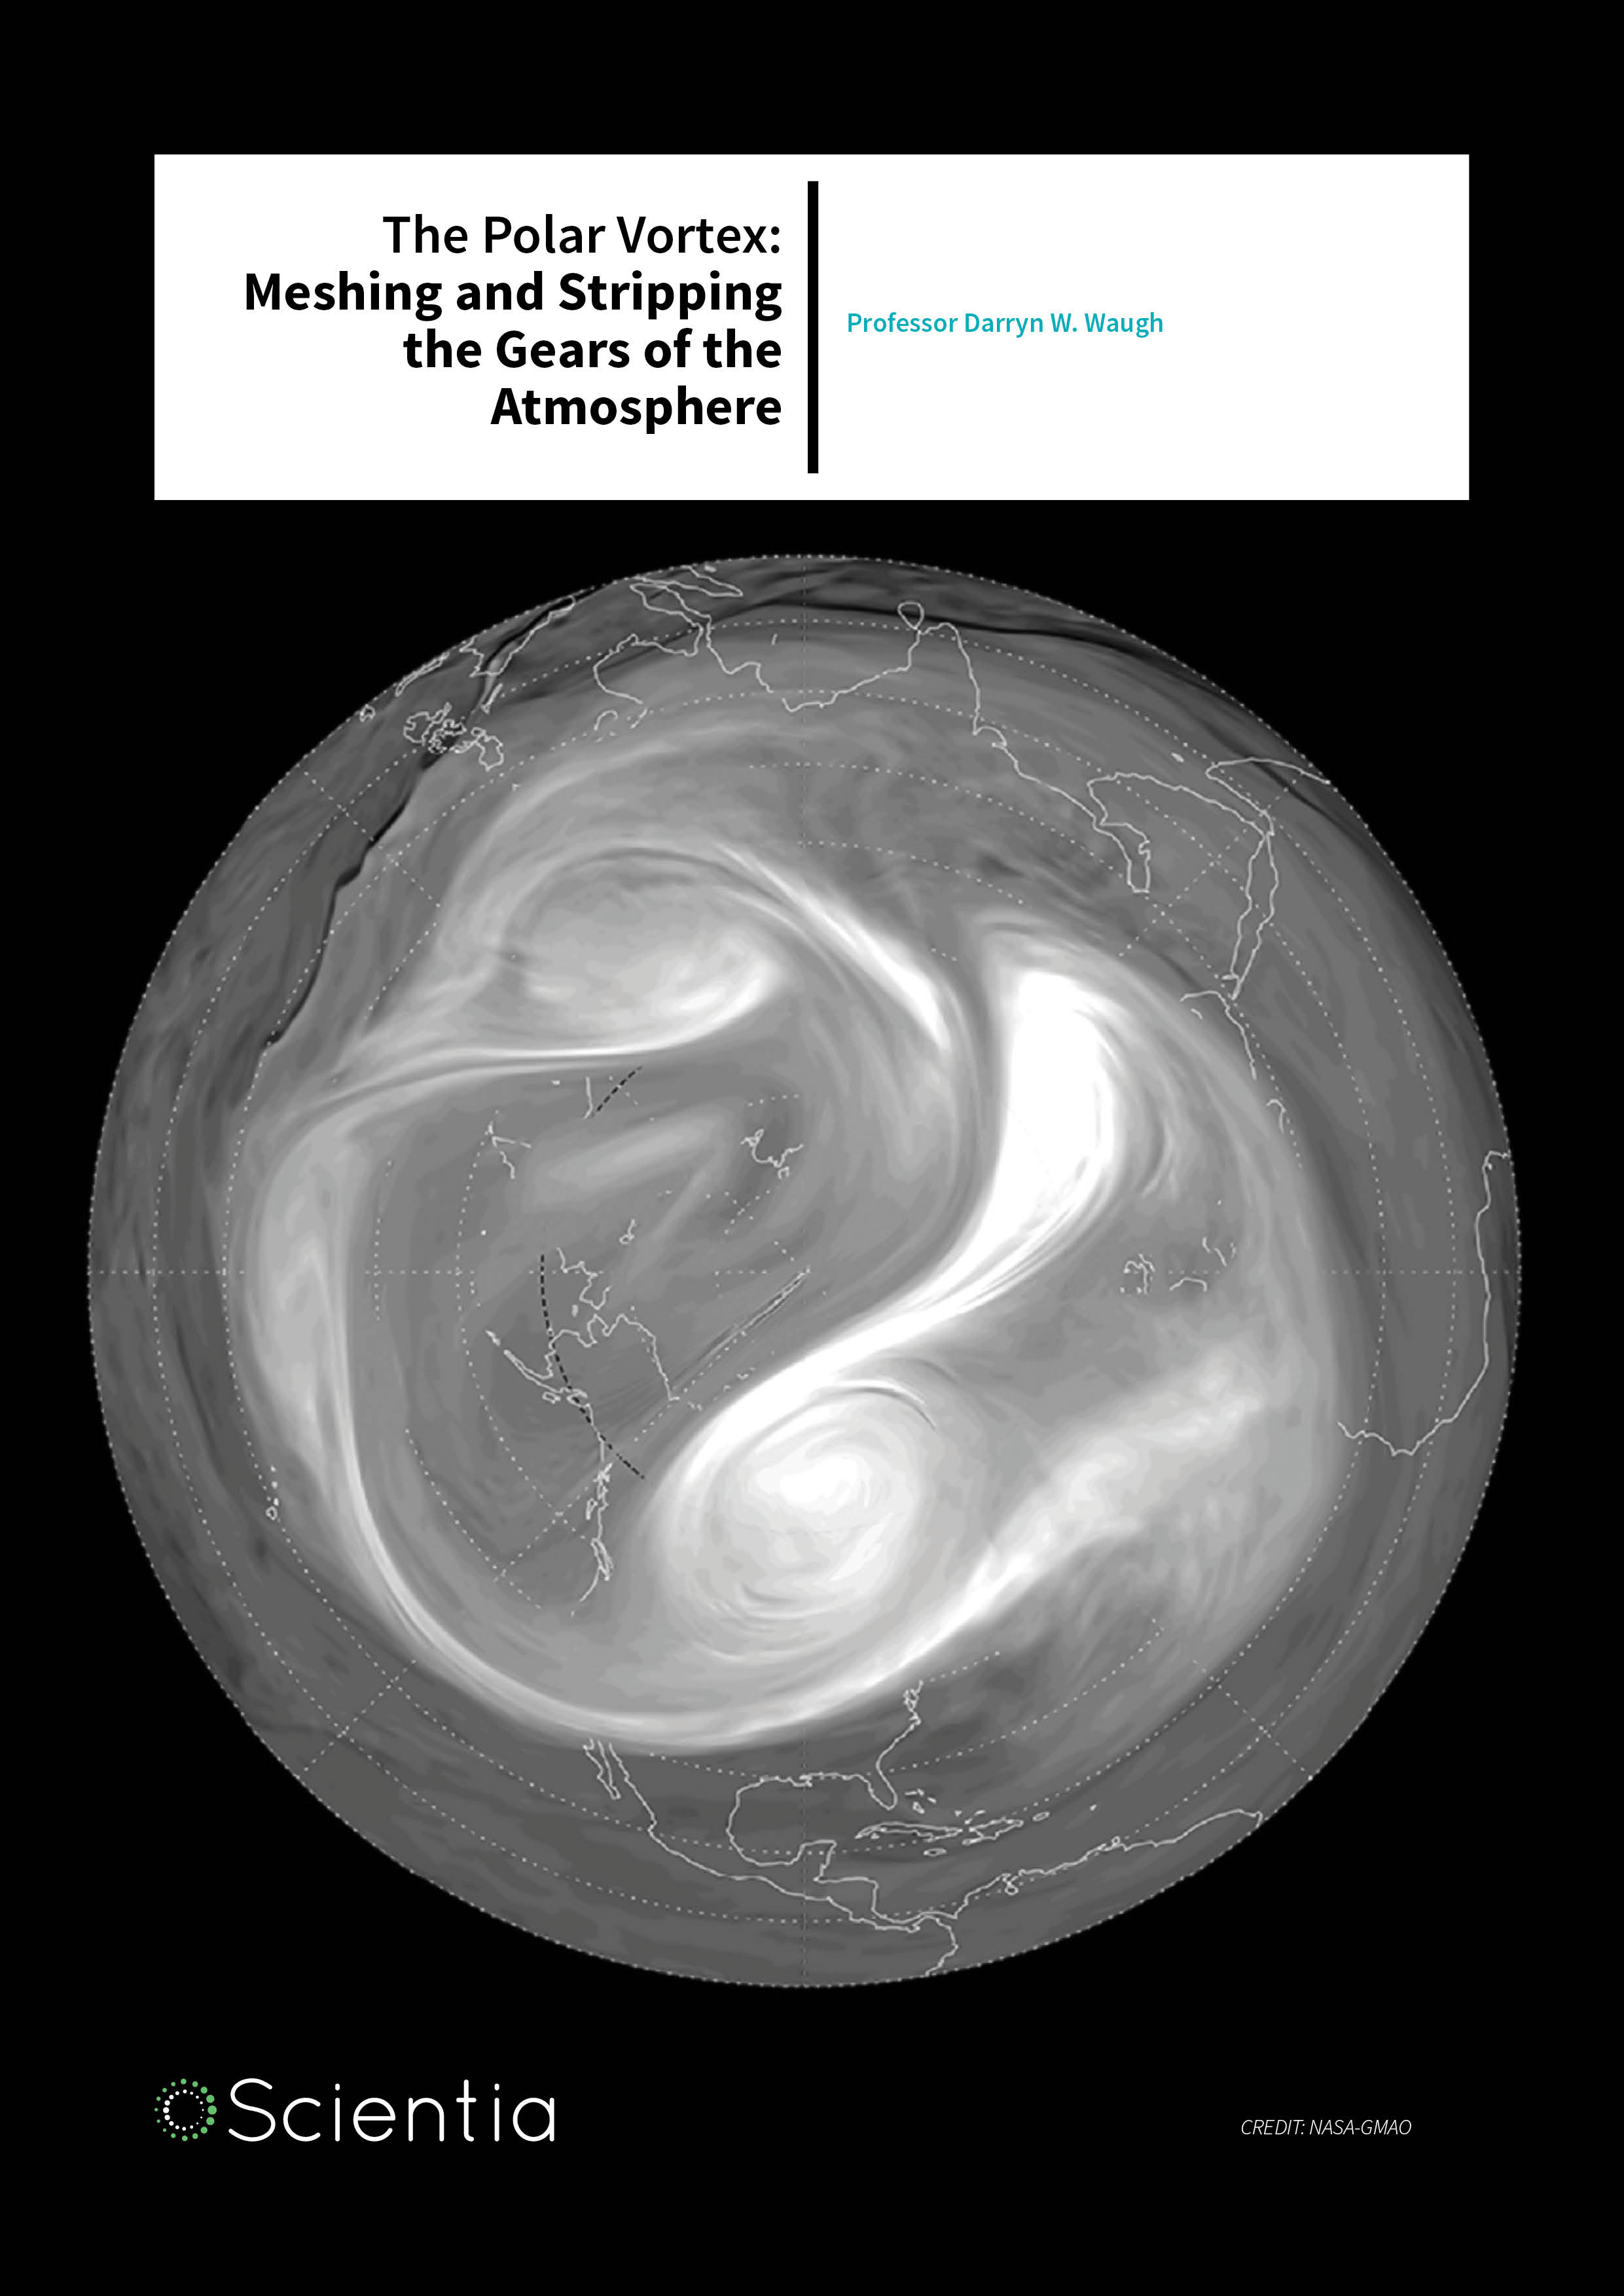 Professor Darryn W. Waugh – The Polar Vortex: Meshing and Stripping the Gears of the Atmosphere